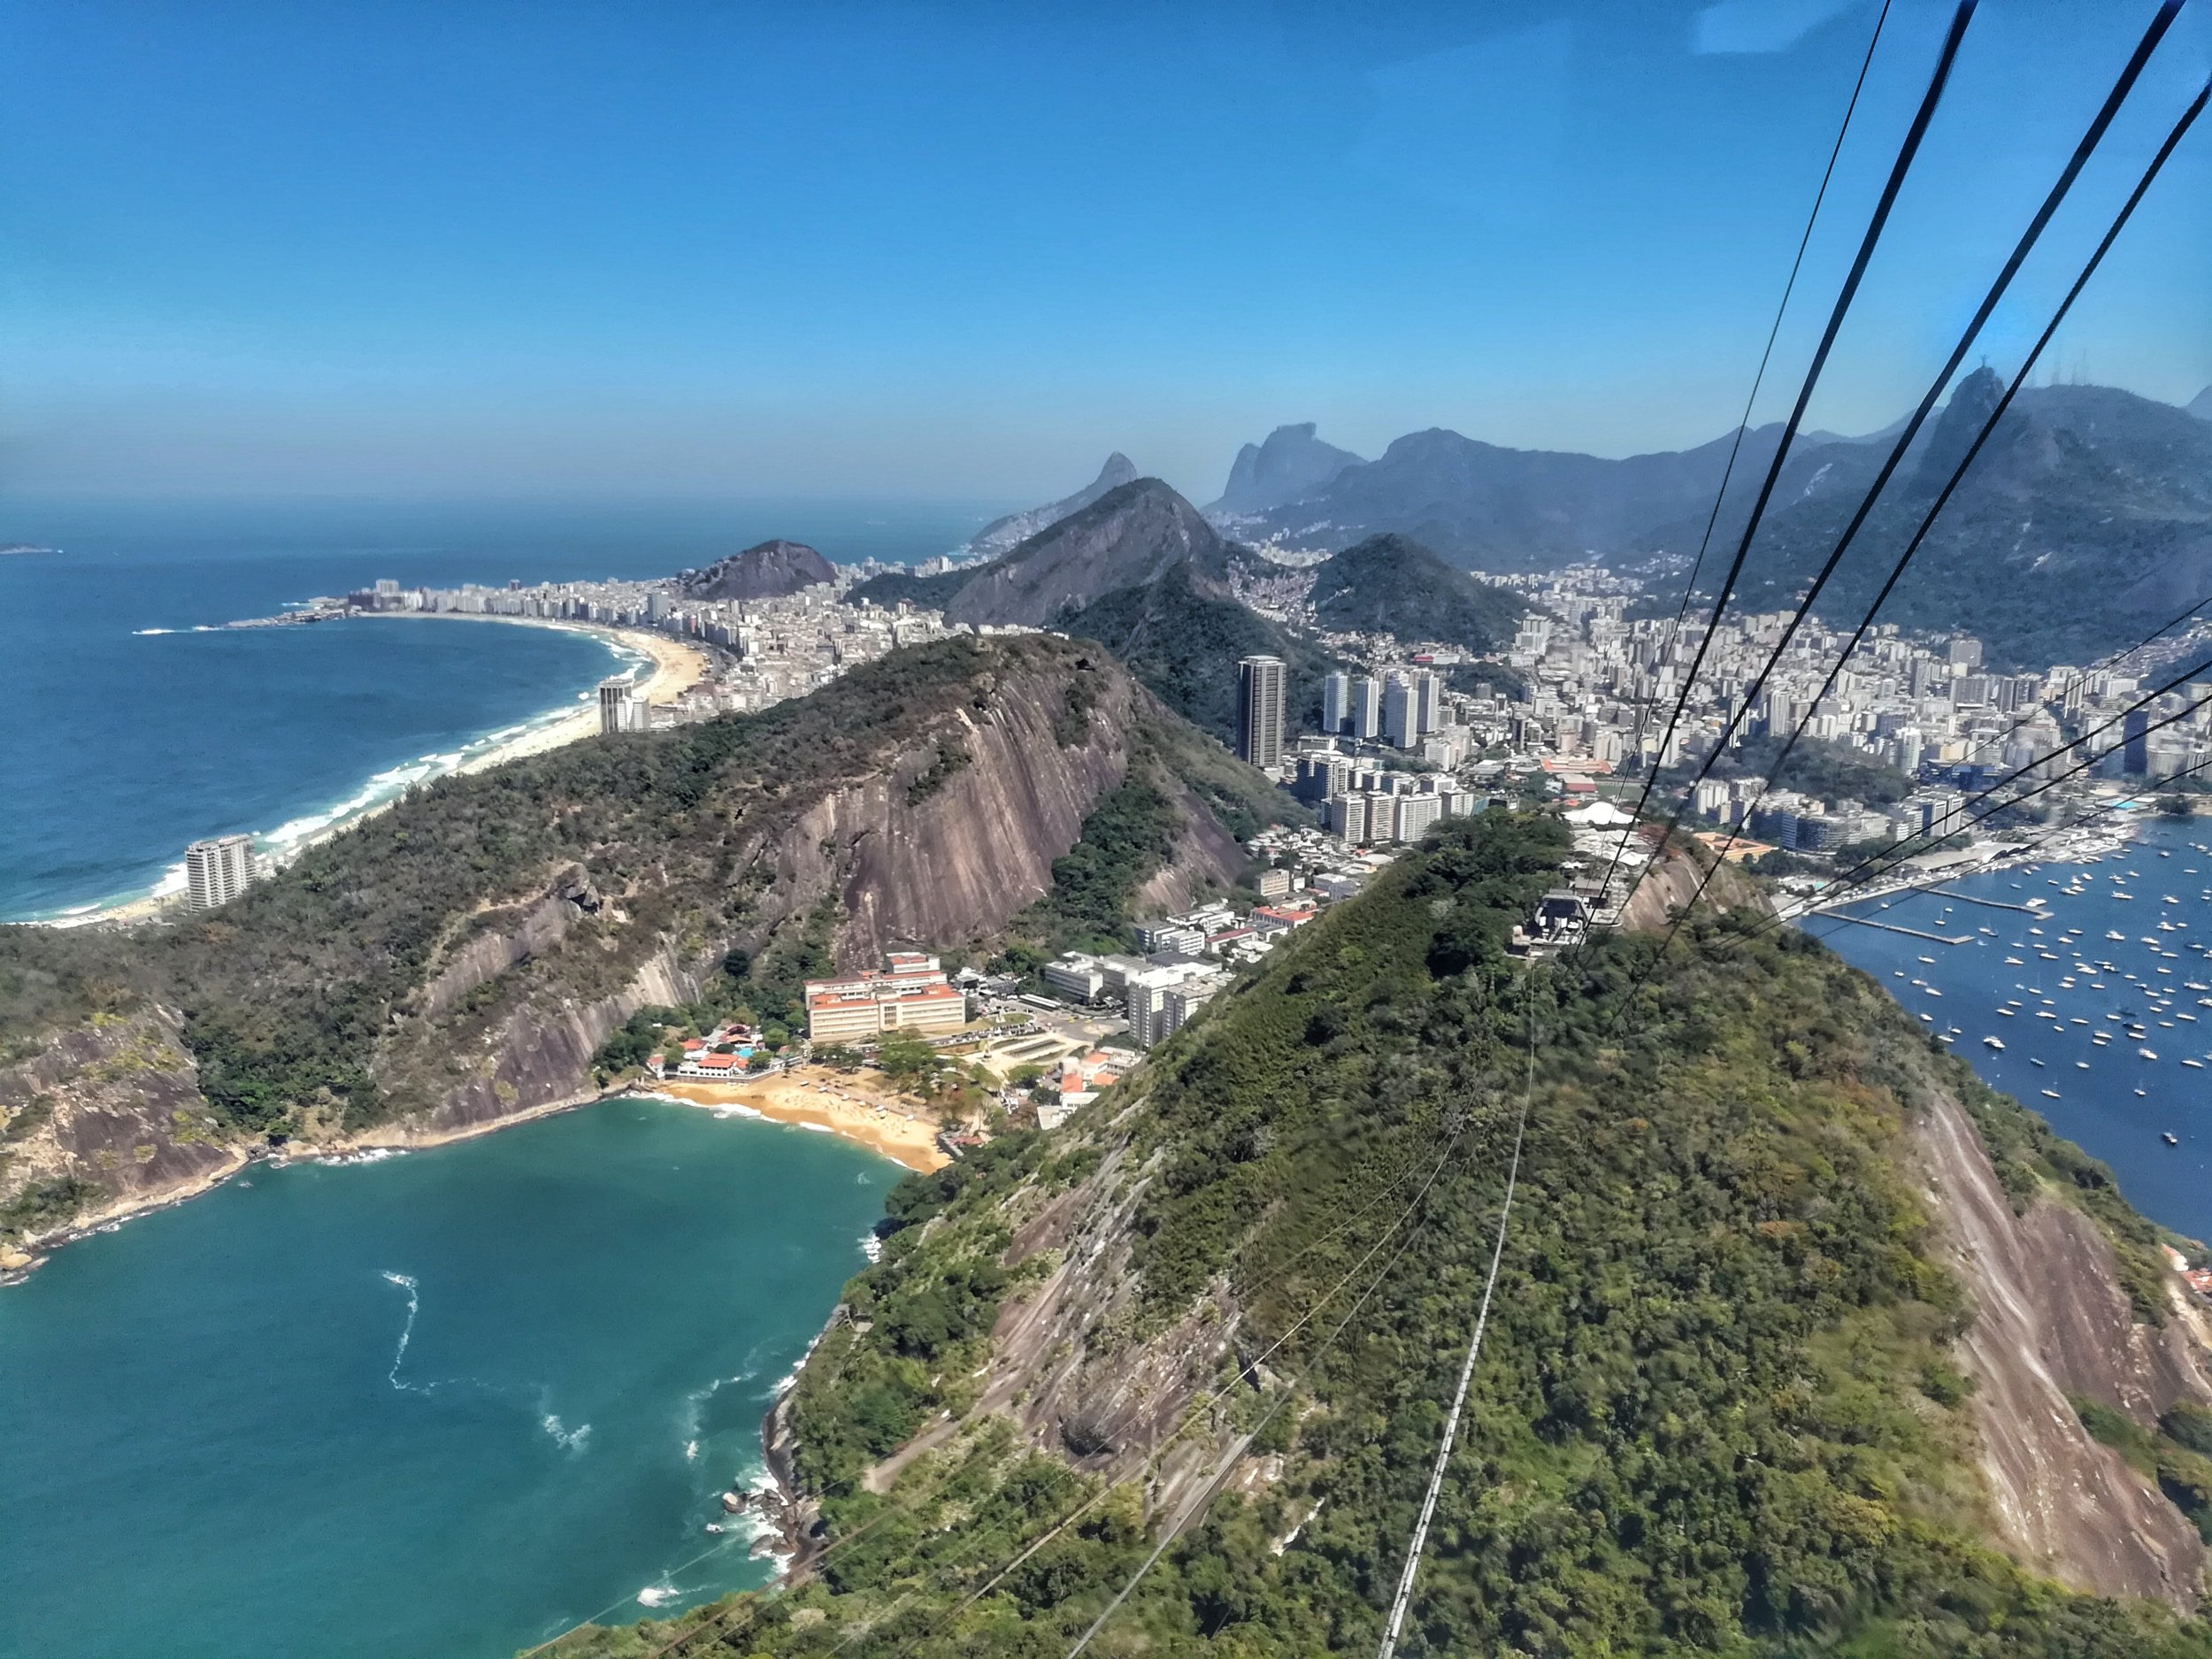 On the cable car up to sugarloaf mountain!